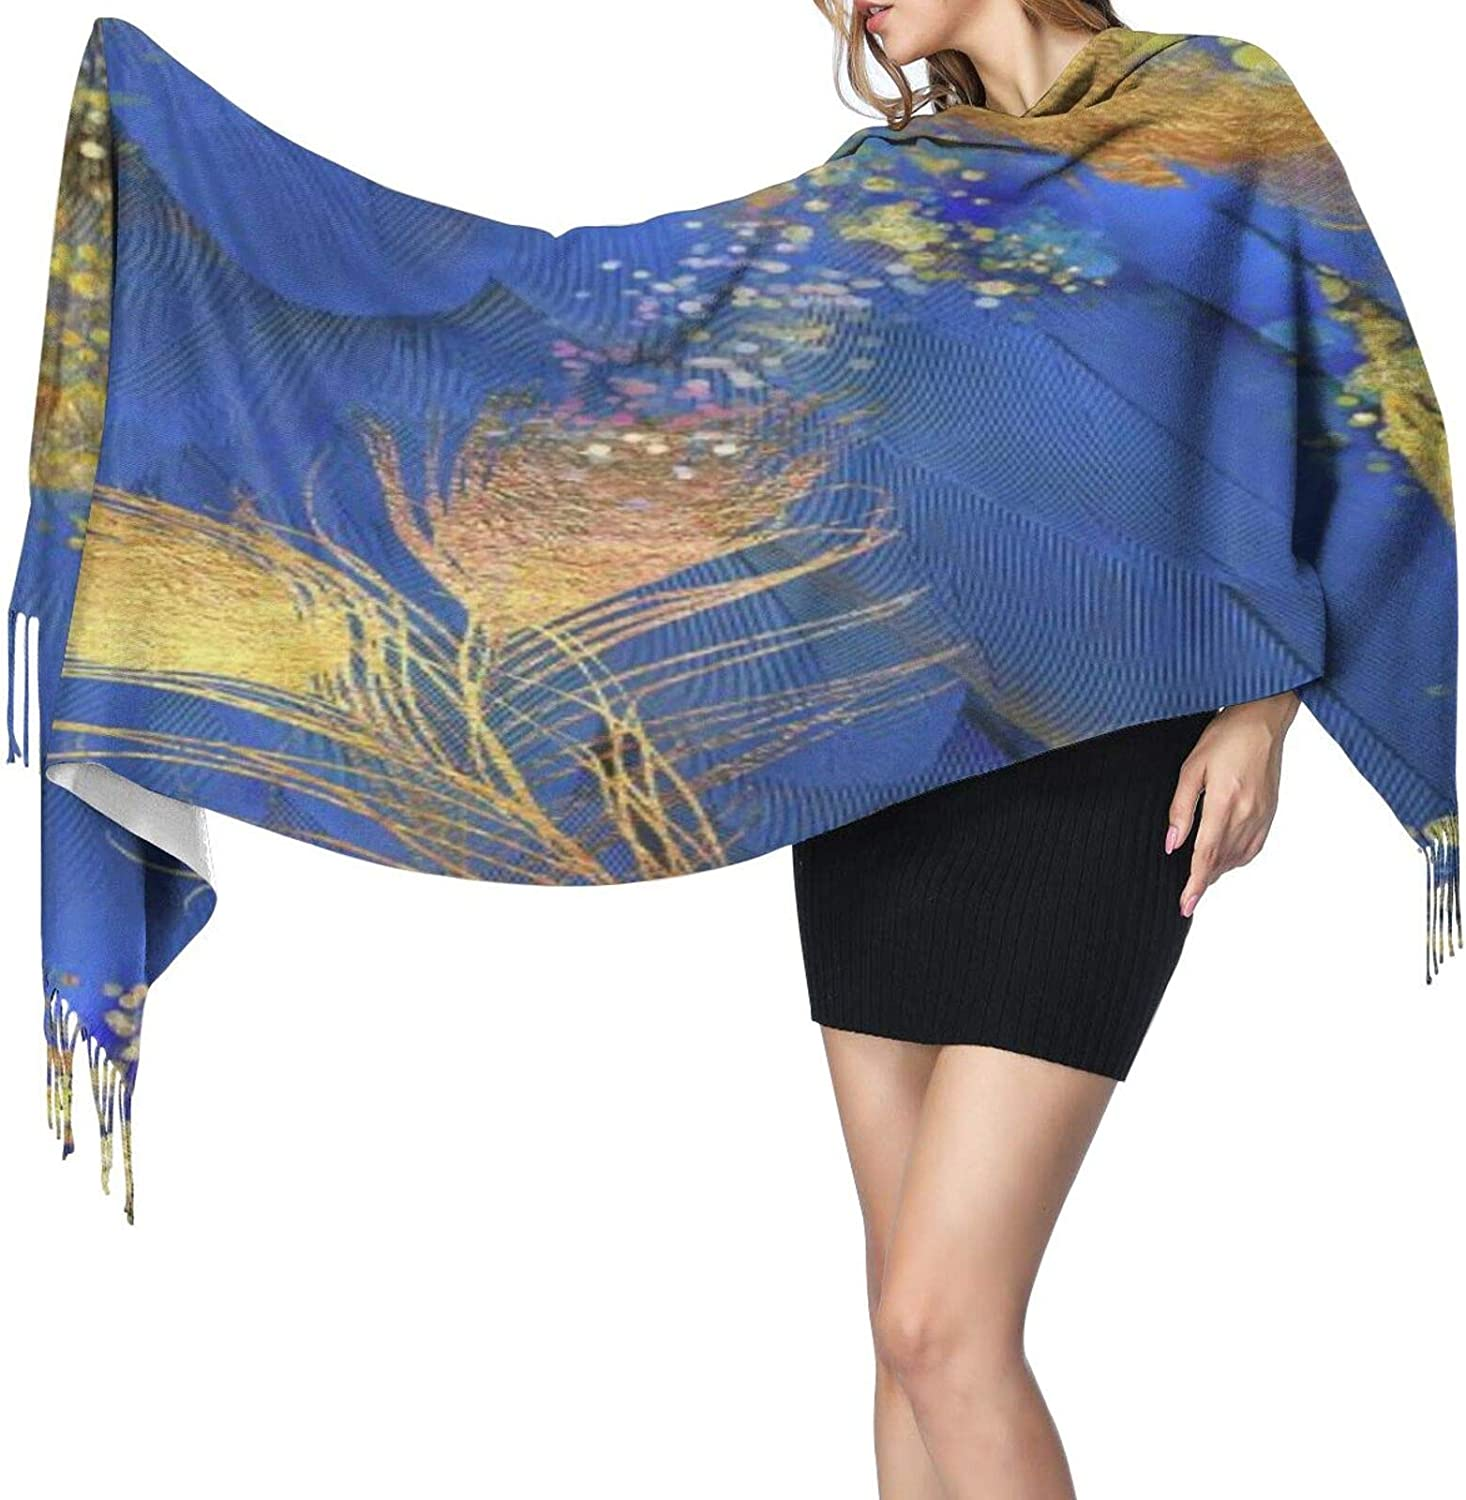 Cashmere fringed scarf Fantasy Peacock Feather Floral winter extra large scarf